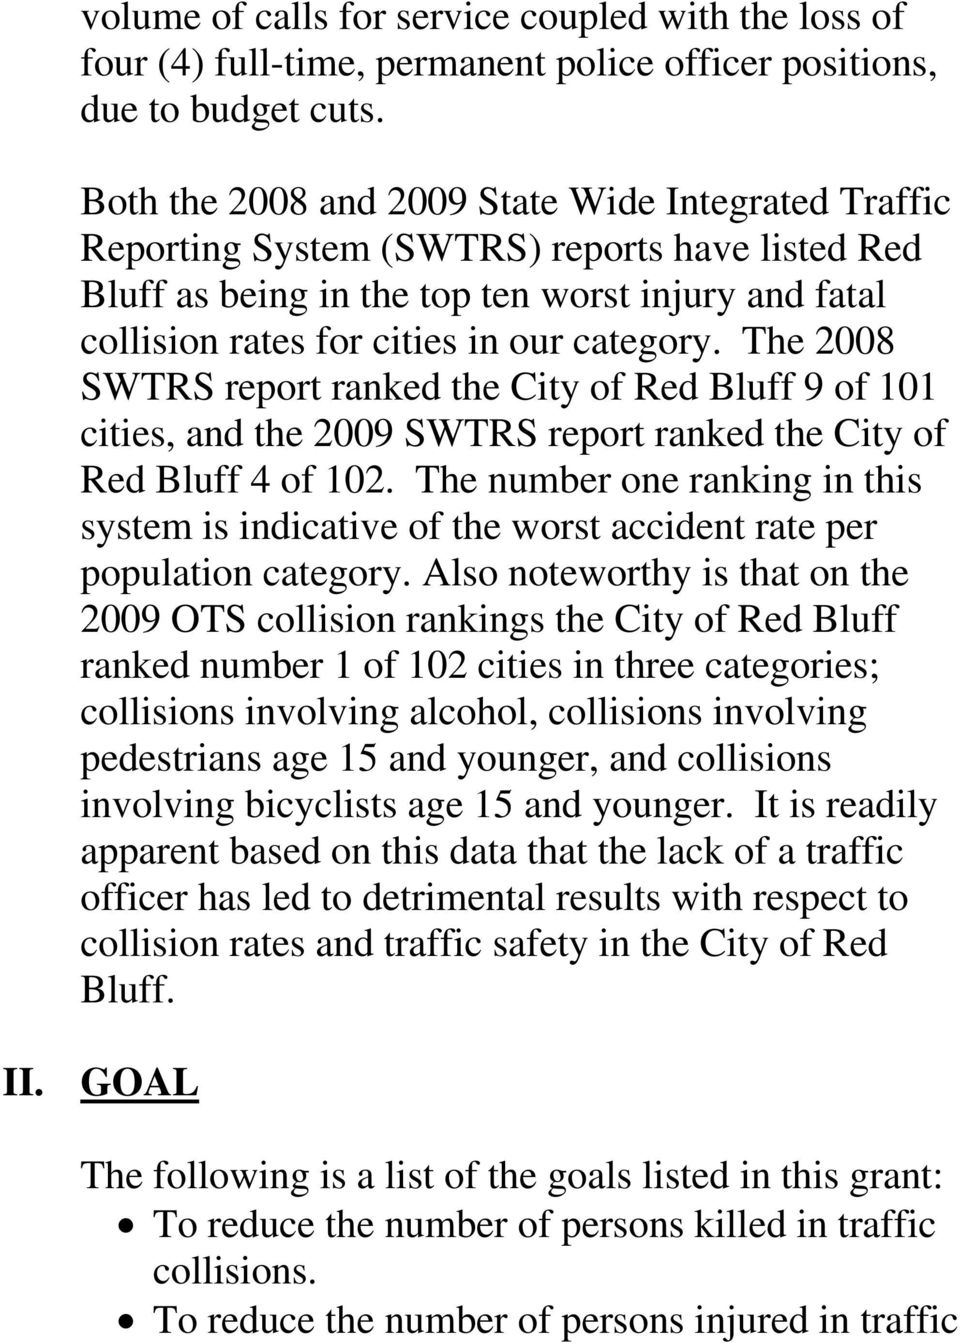 The 2008 SWTRS report ranked the City of Red Bluff 9 of 101 cities, and the 2009 SWTRS report ranked the City of Red Bluff 4 of 102.